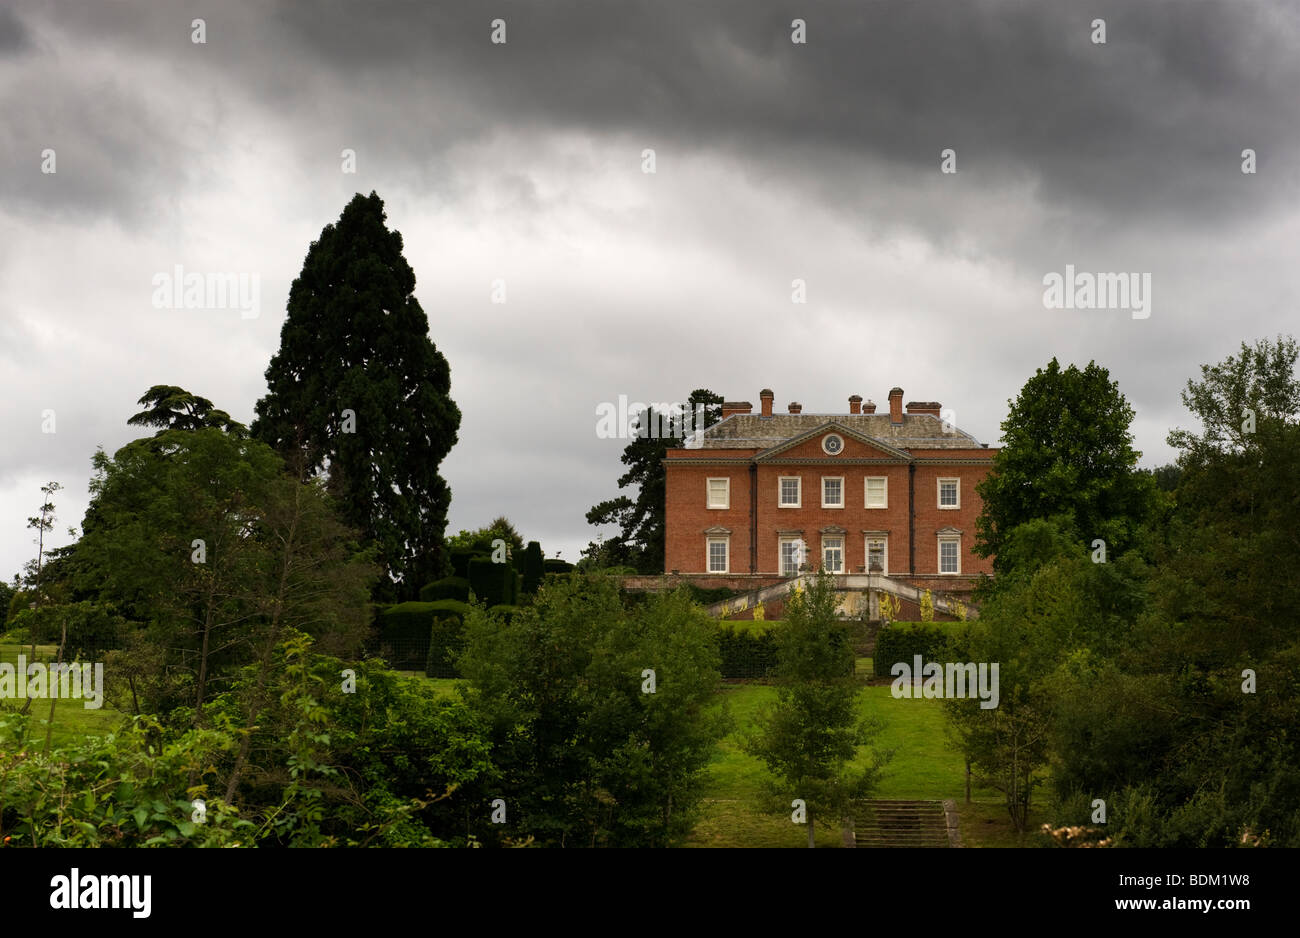 A landscape view Culham House in Chilterns countryside near Hambleden, Buckinghamshire, UK - Stock Image